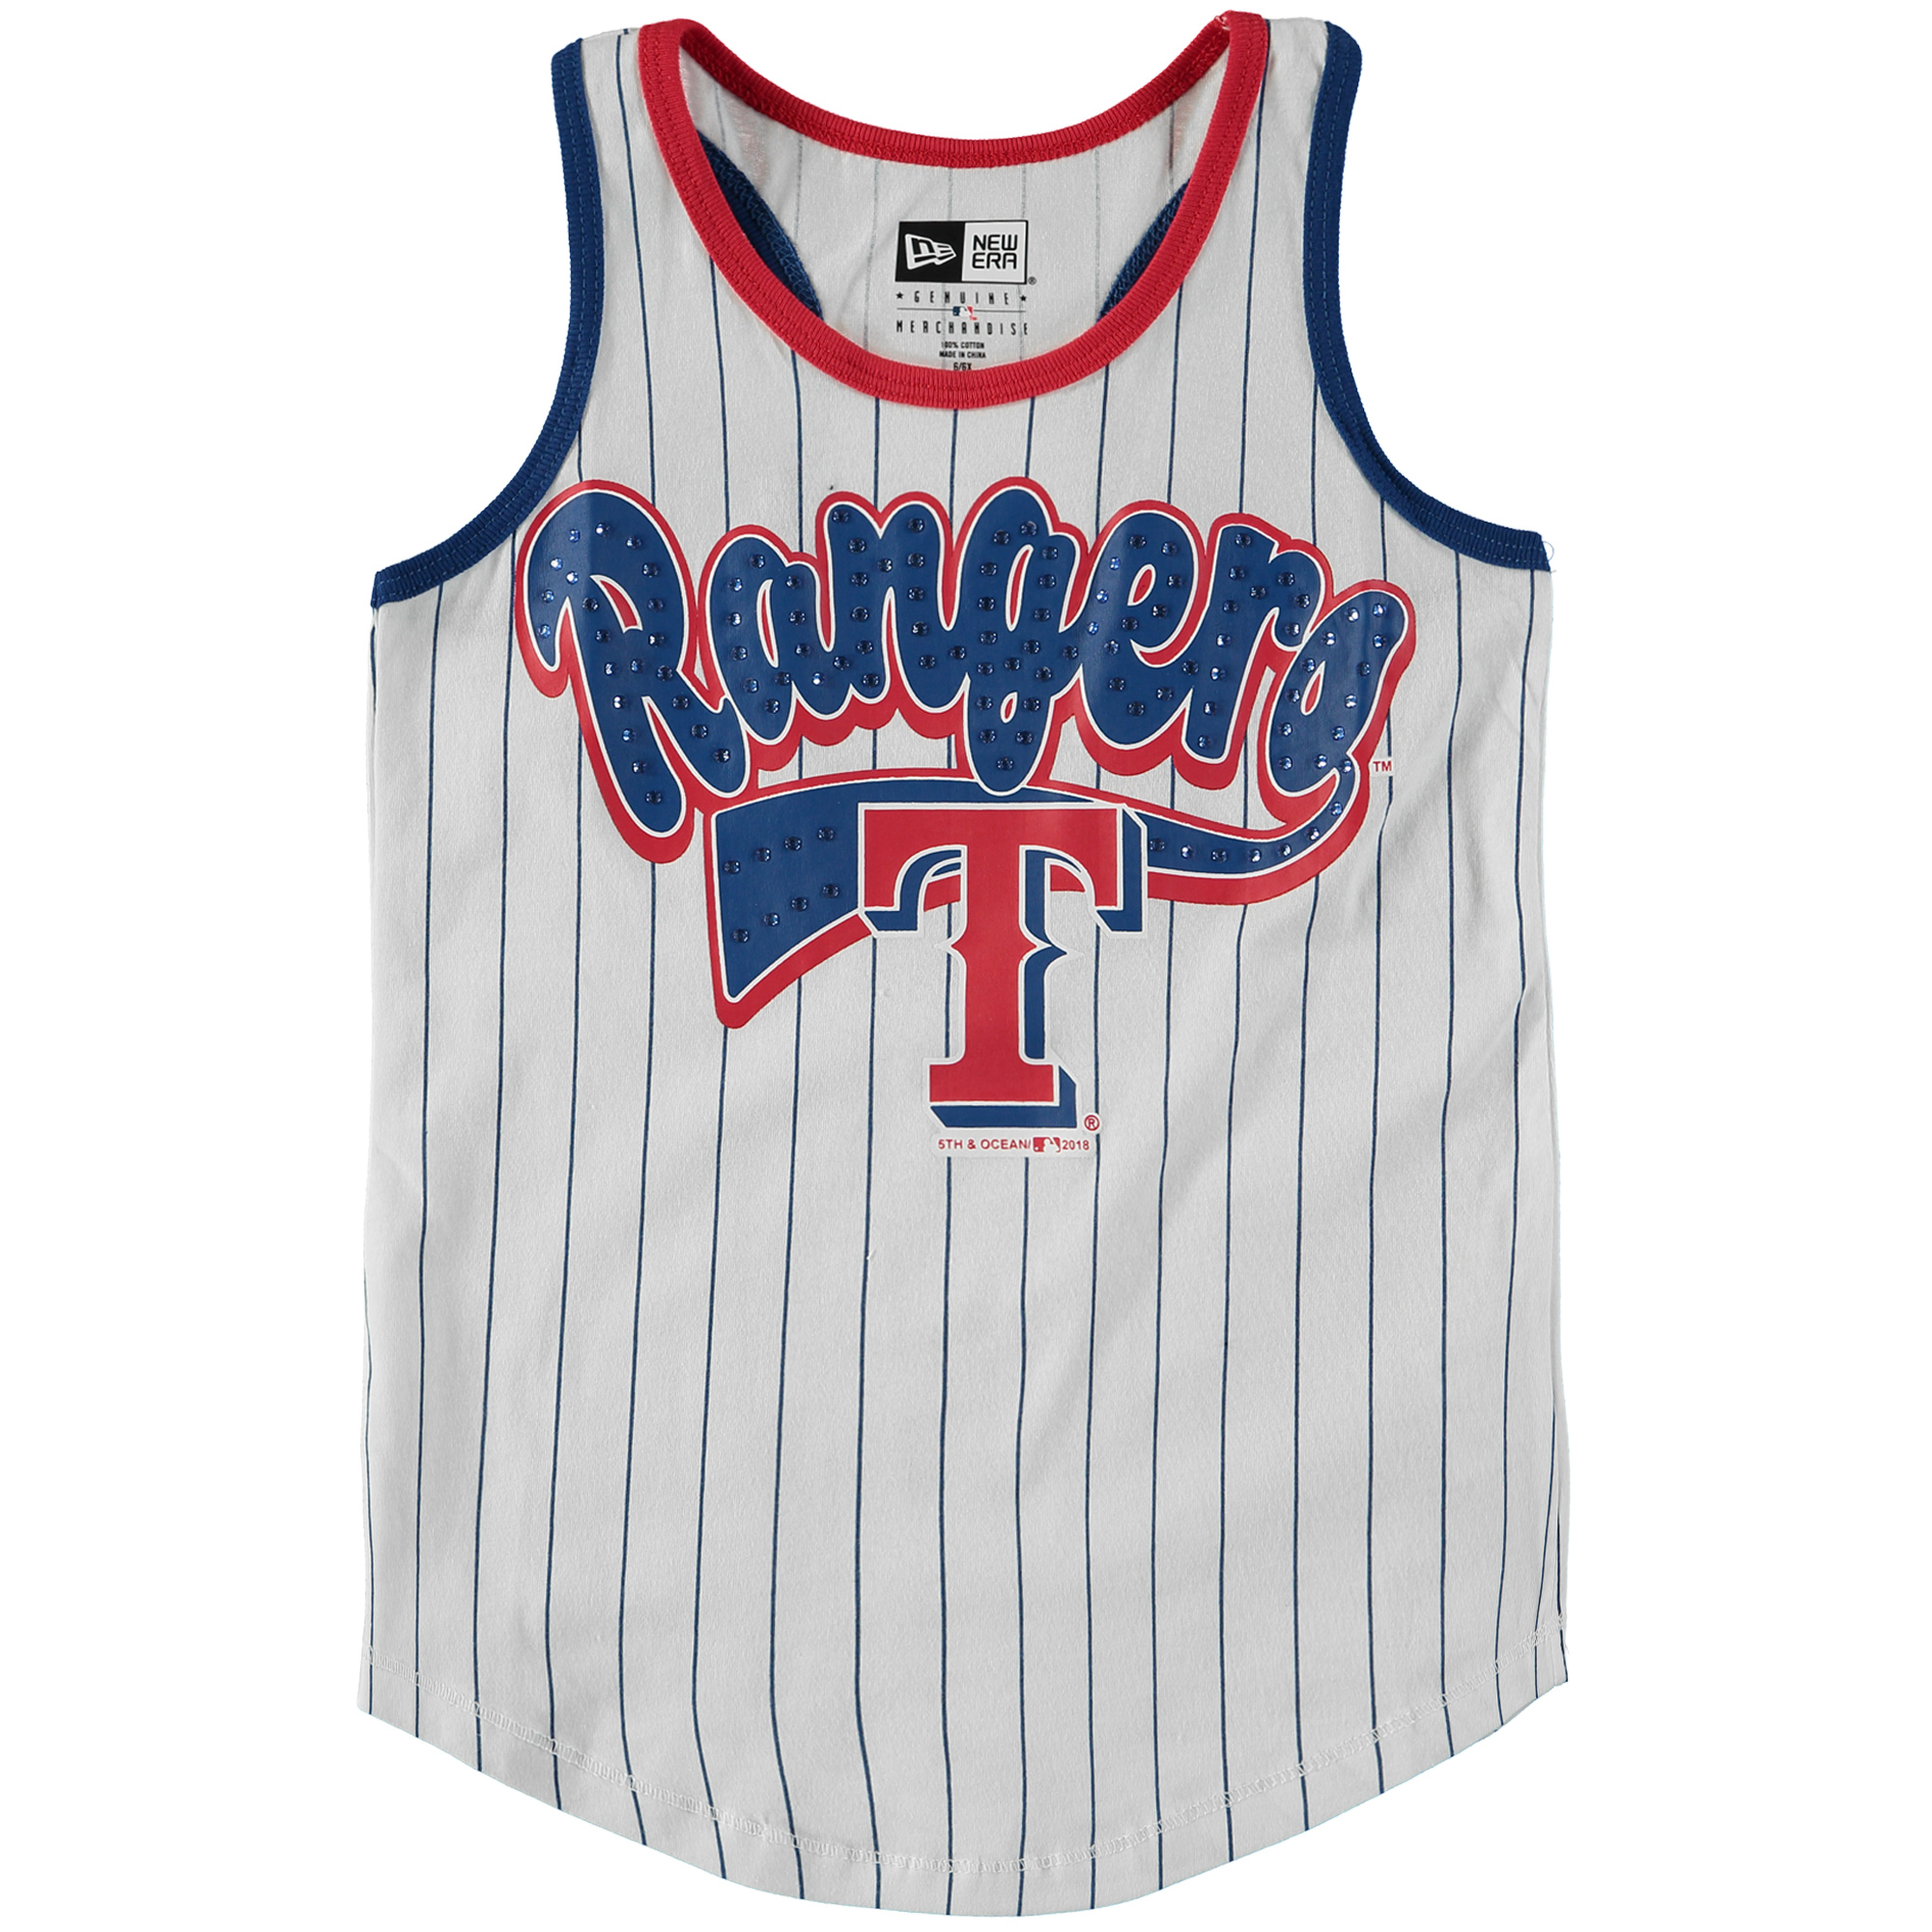 Texas Rangers 5th & Ocean by New Era Girls Youth Pinstripe Racerback Jersey Tank Top - White/Royal